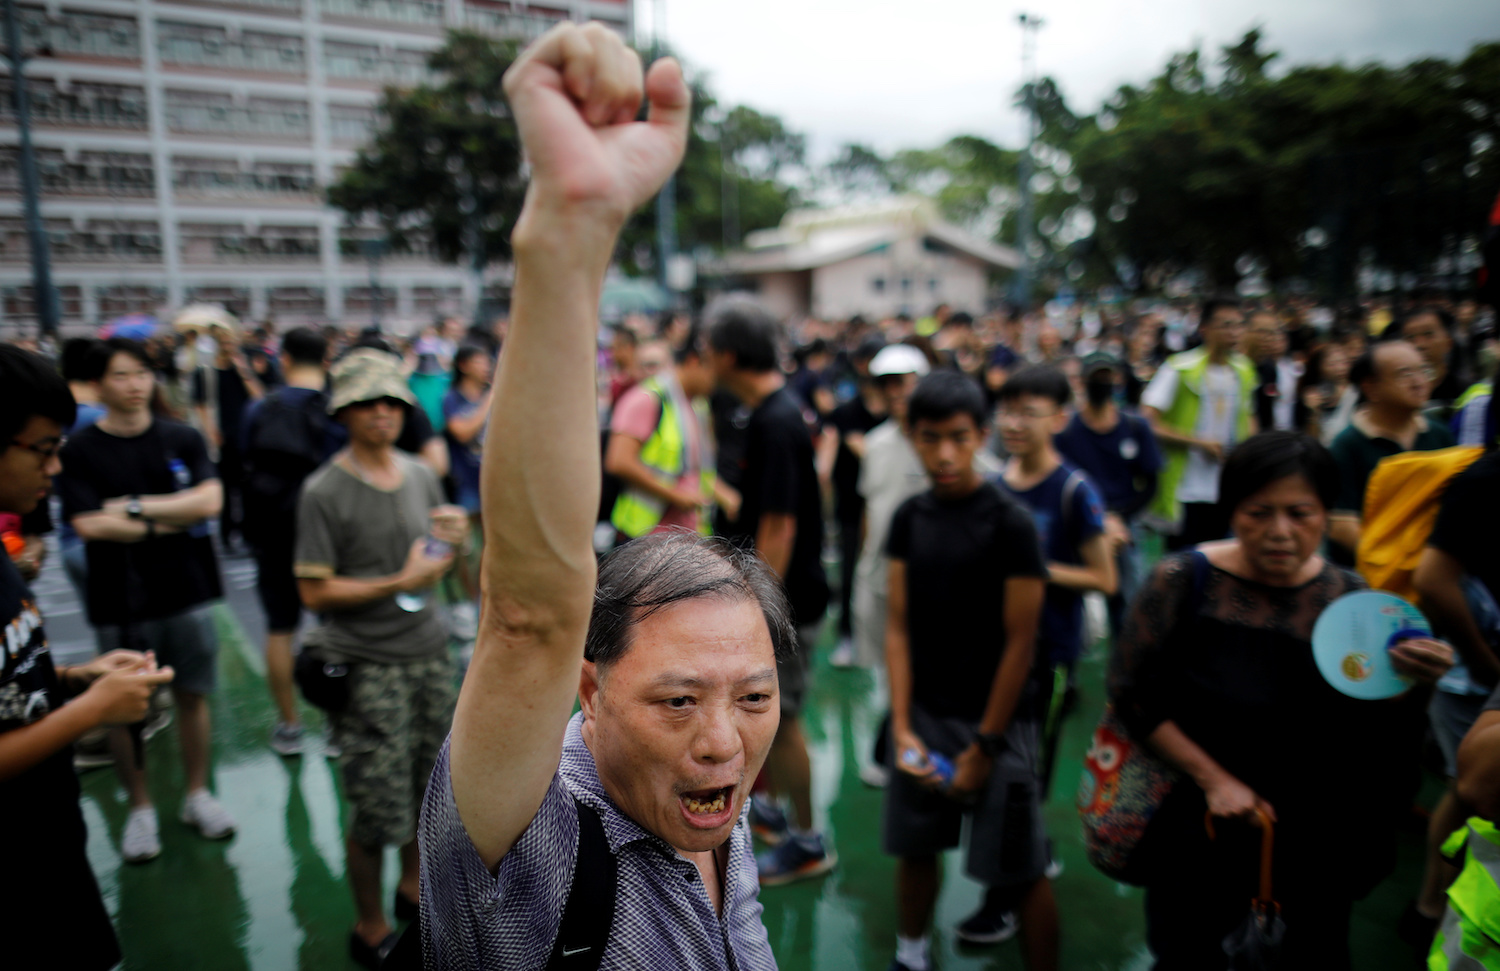 A man gestures during a demonstration against the Hong Kong administration in the To Kwa Wan neighbourhood on Saturday. (Reuters Photo)